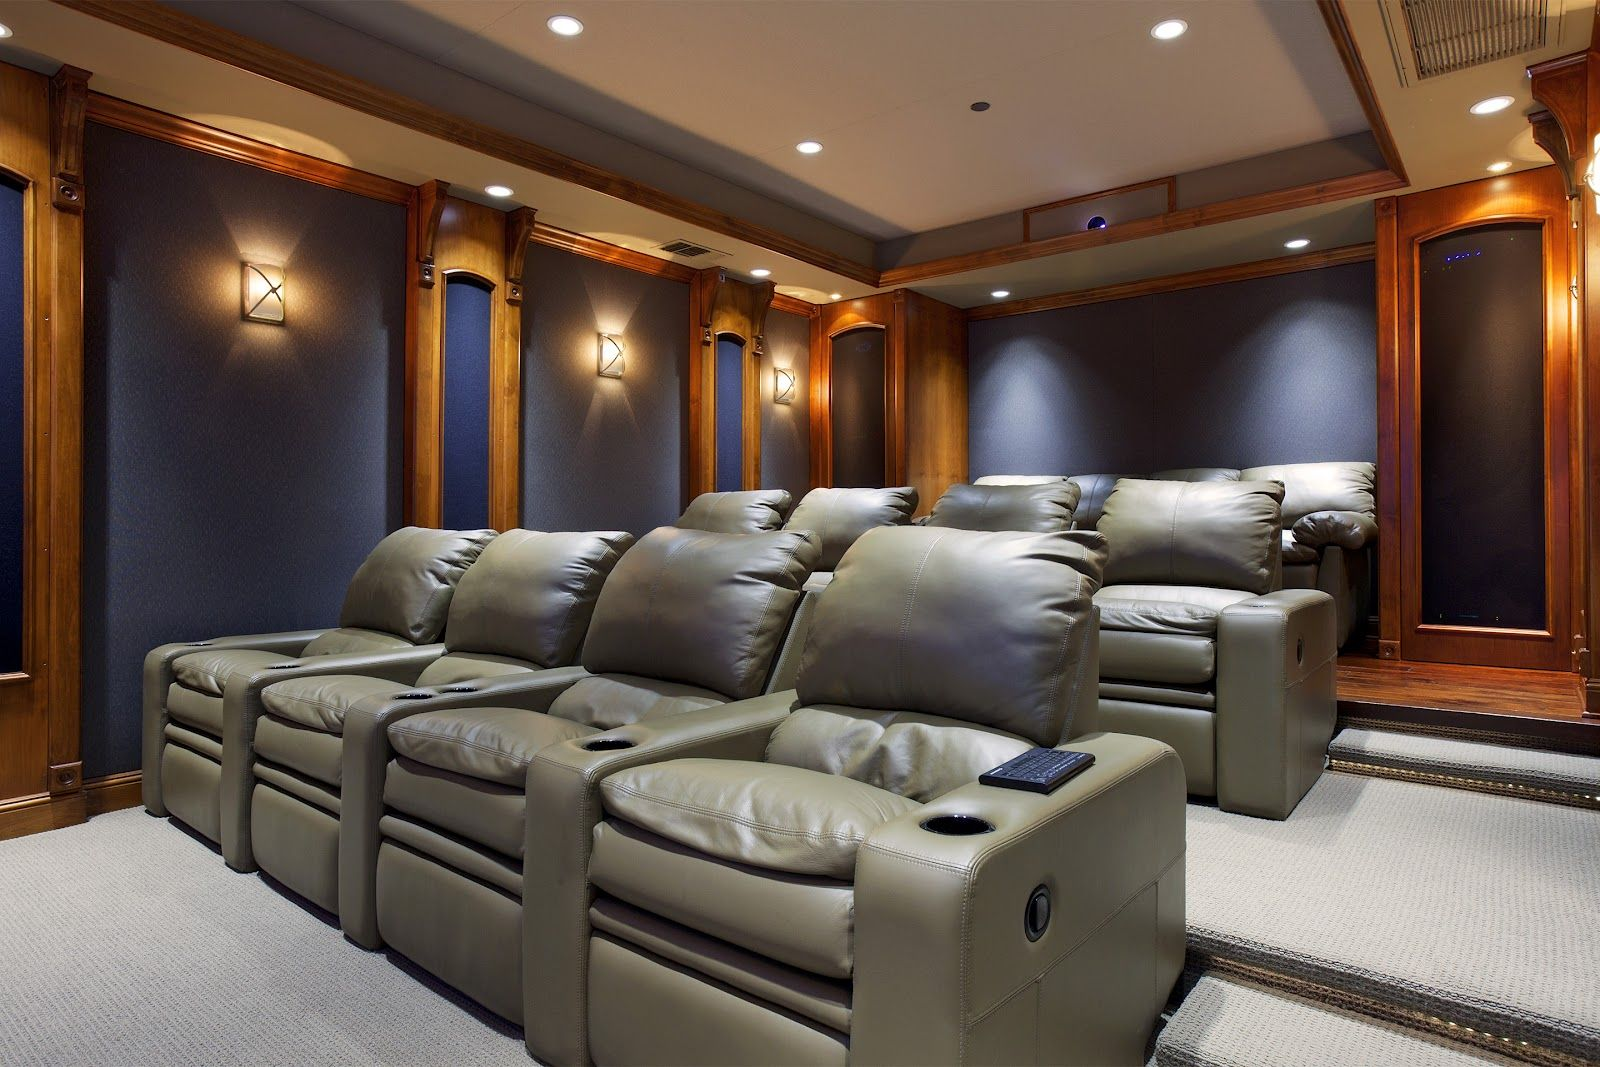 Wall Sconces Home Theater Home Theater Seating Home Theater